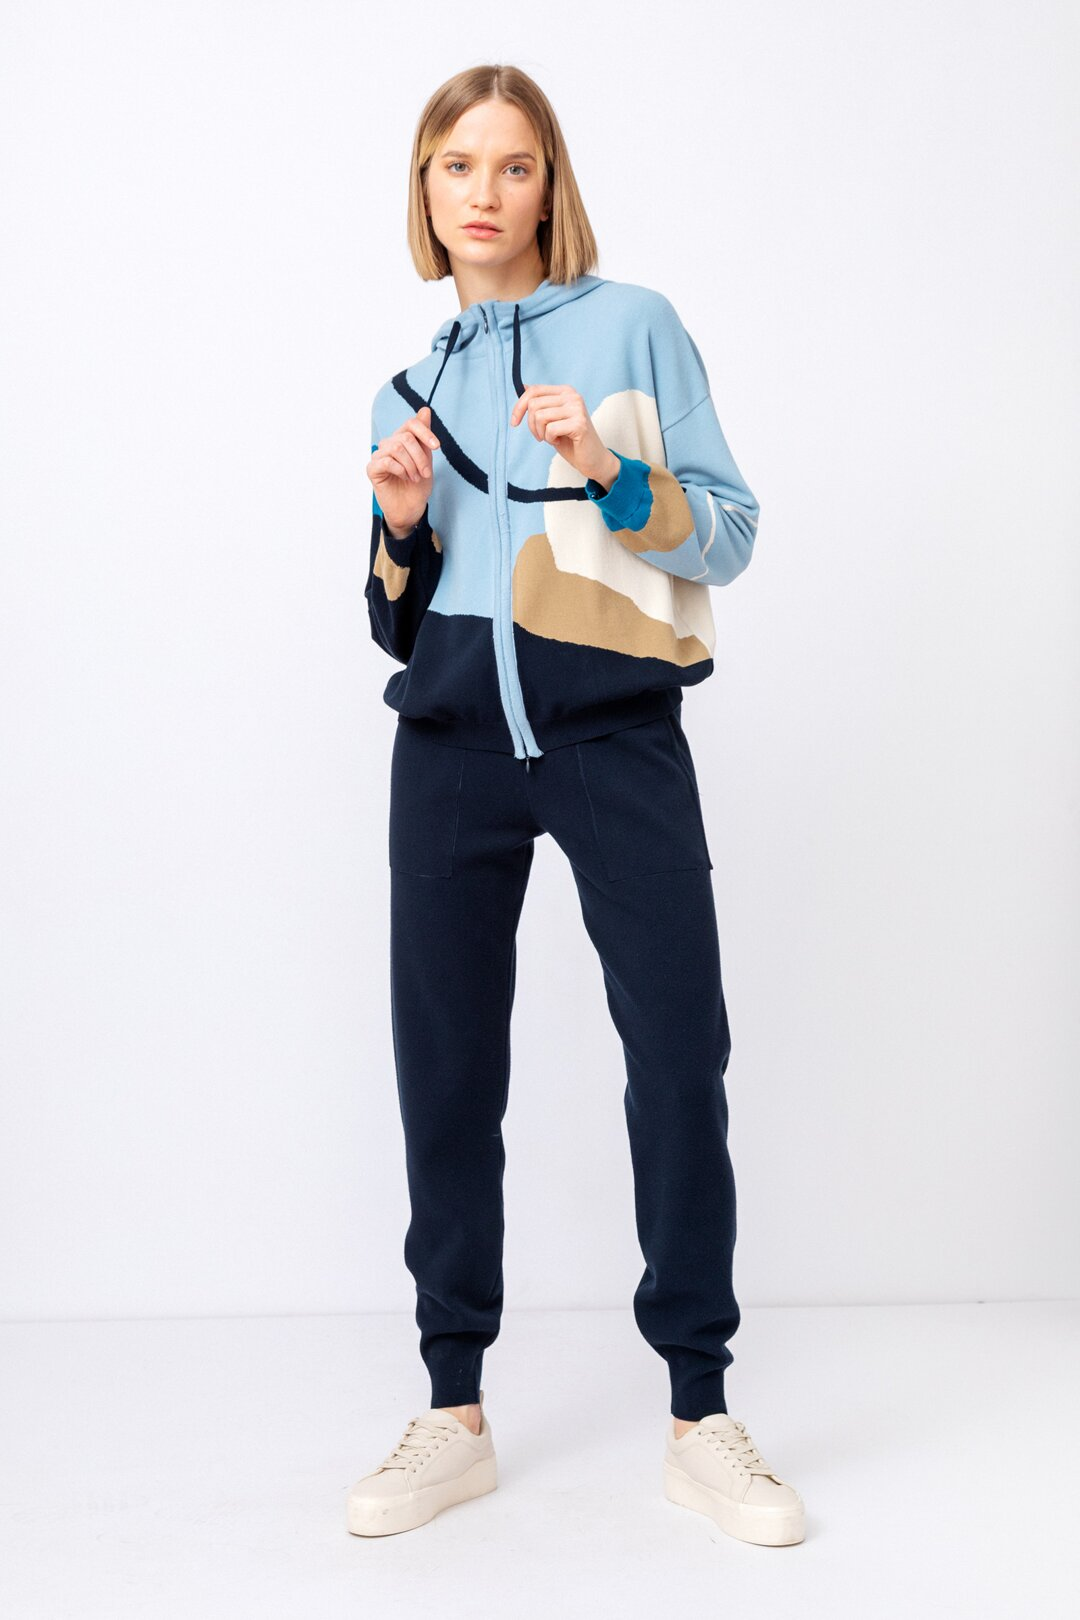 outfit-7c8a0201